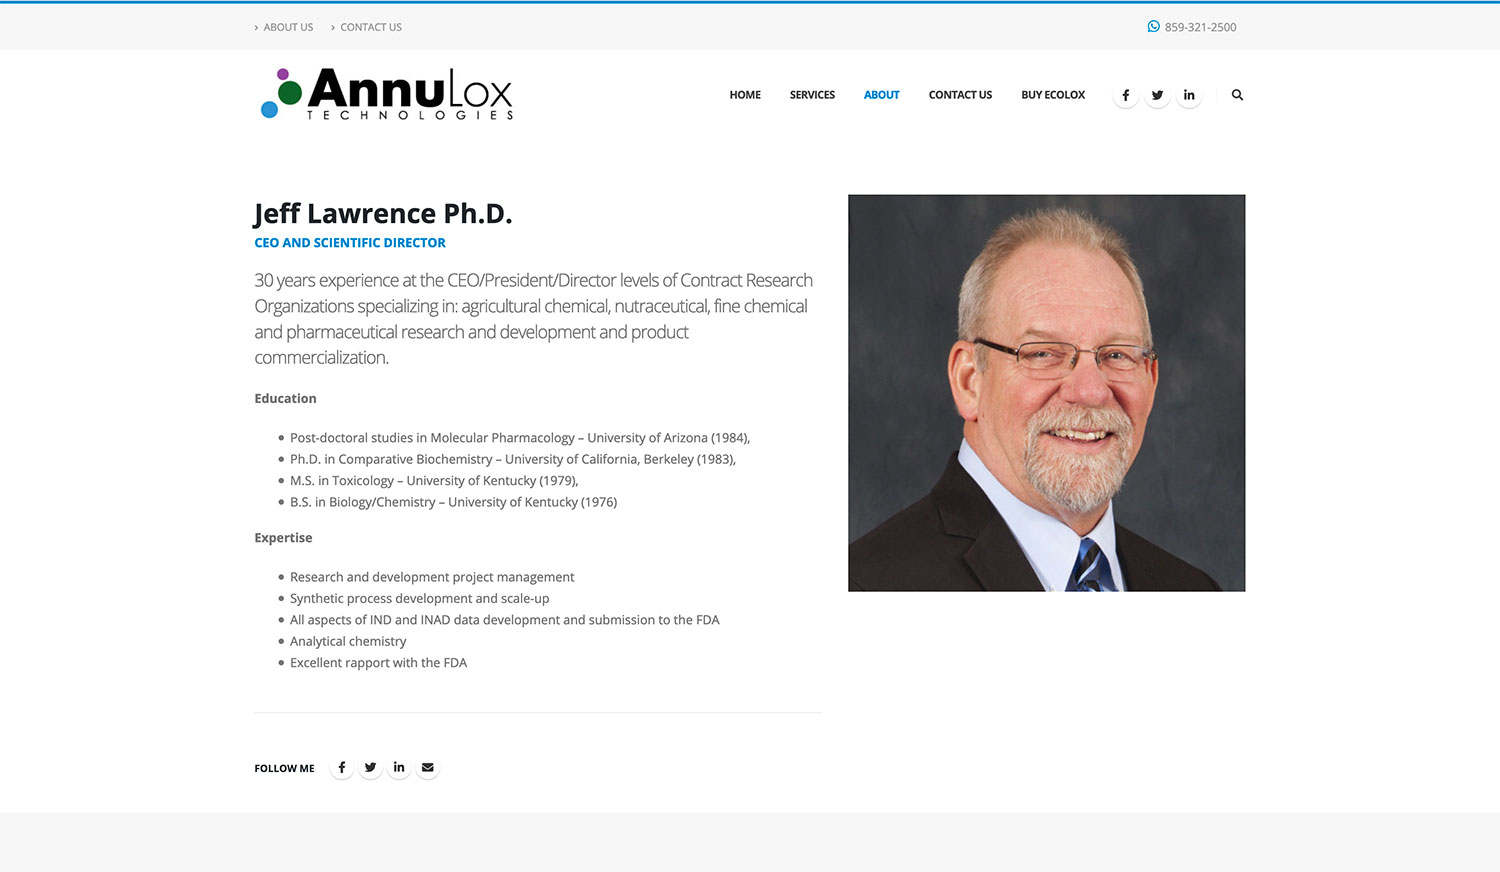 AnnuLox Technologies Personnel Page - Website Design